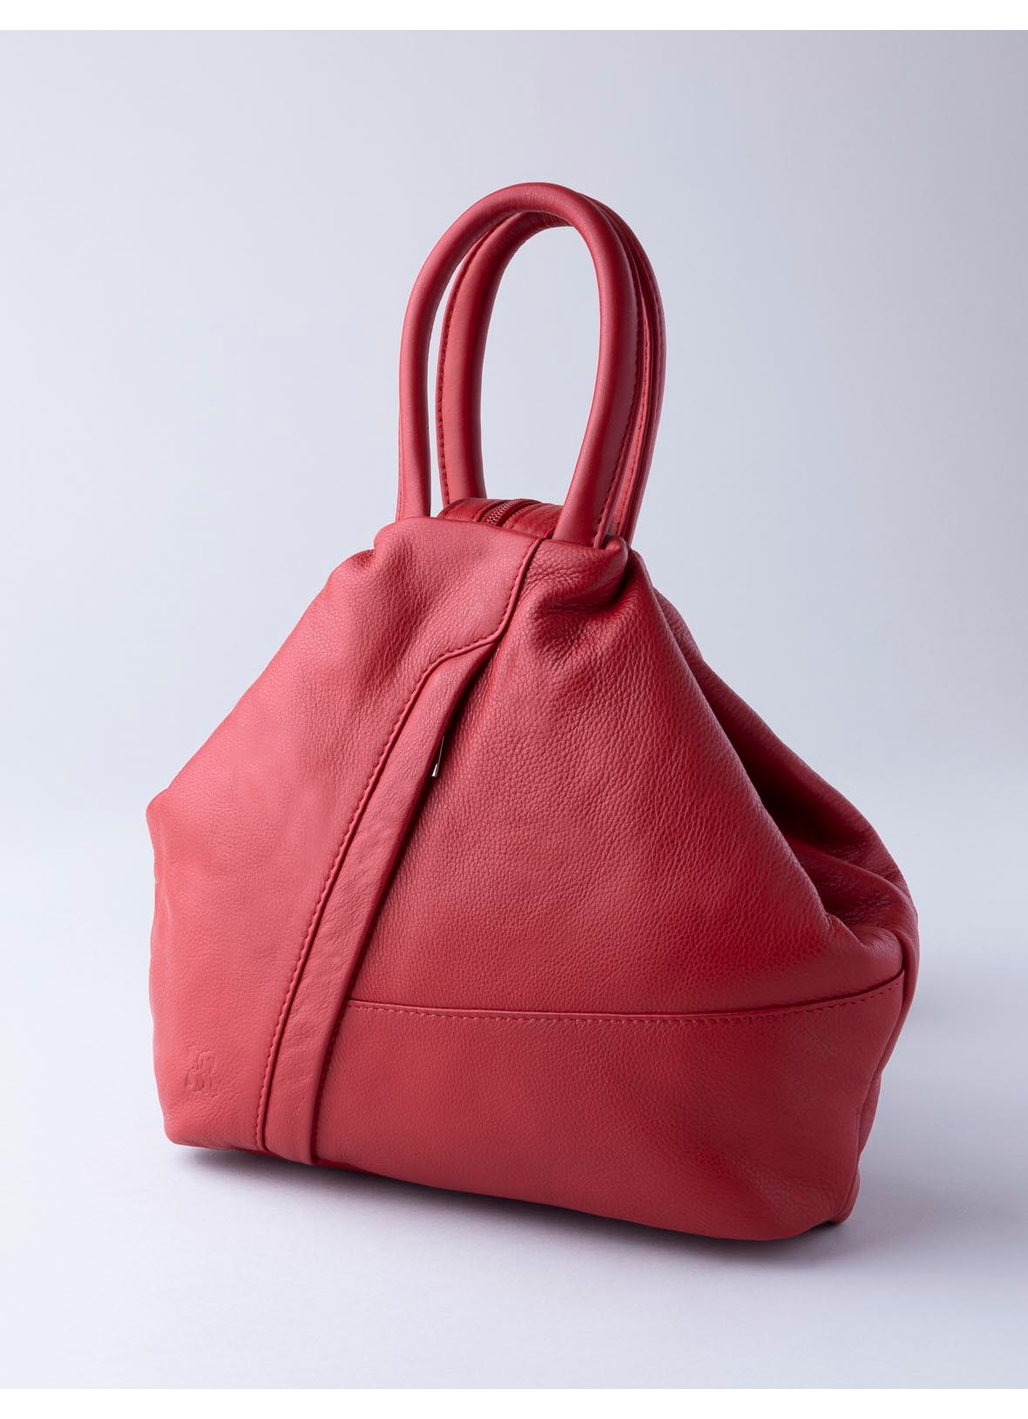 Juliet Leather Backpack in Red